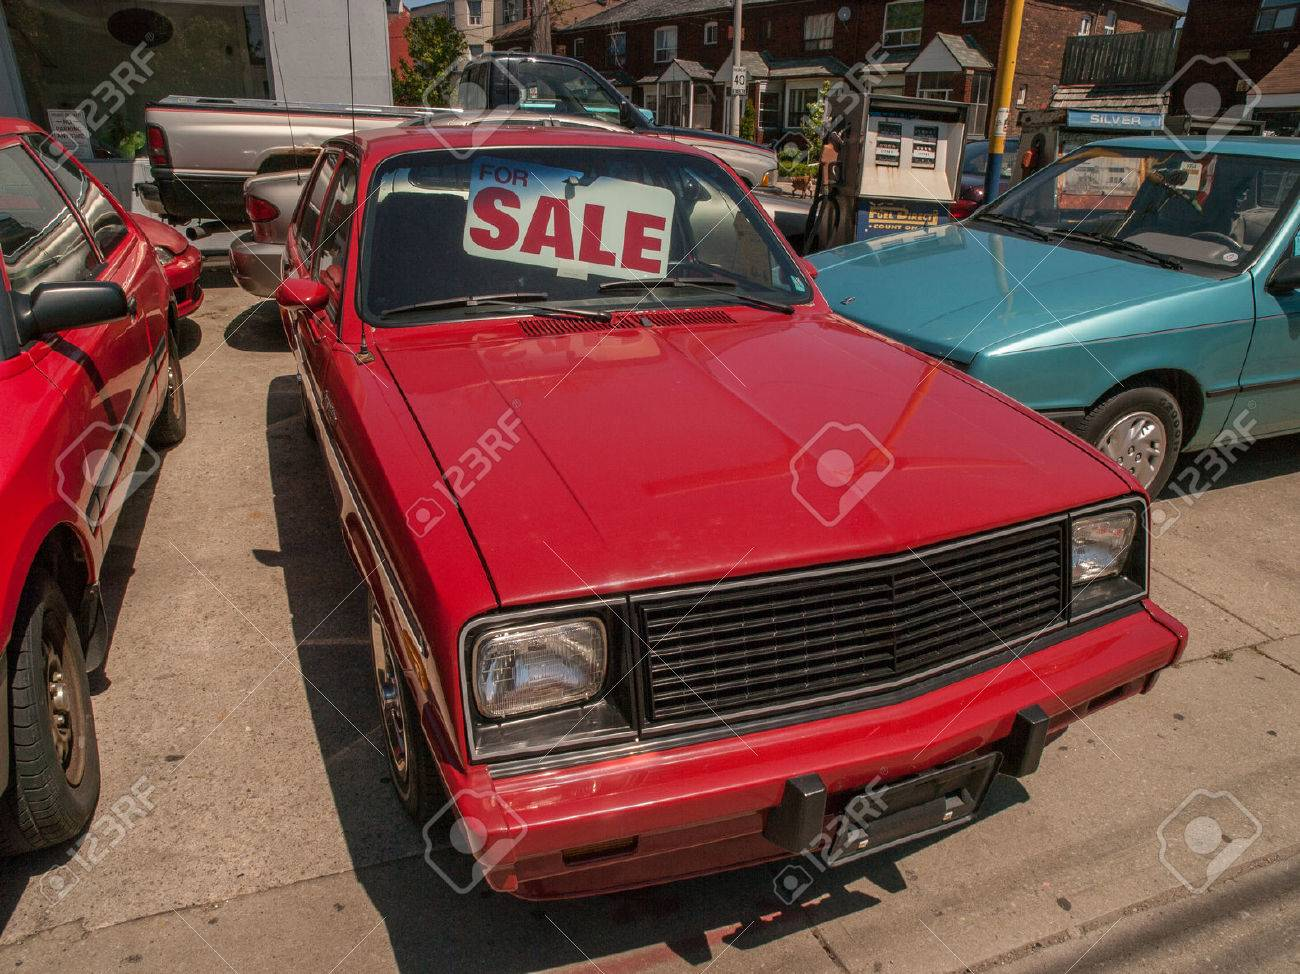 Buy Used Cars Toronto >> Old Red Hatchback Car For Sale In A Used Car Lot In Toronto Ontario